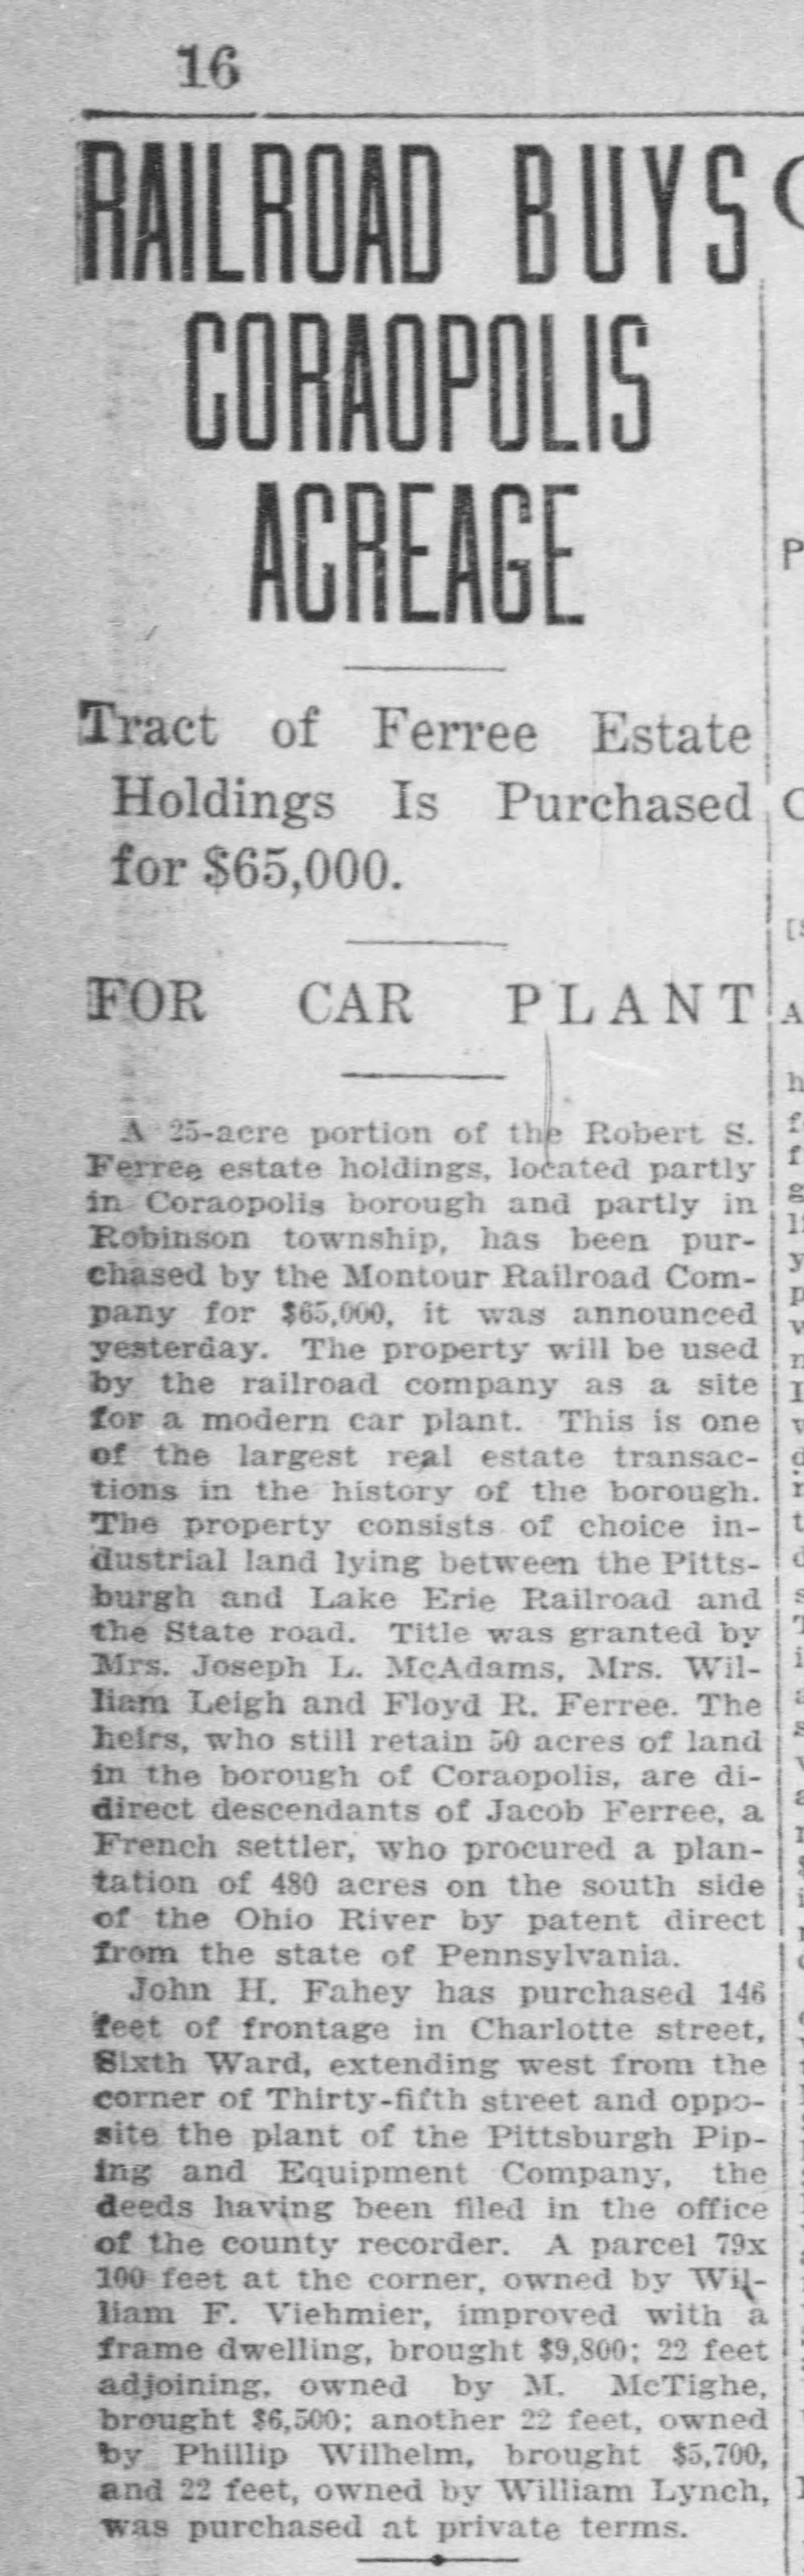 1918-12-19 Pittsburgh Post Gazette - RR Buys Coraopolis Acreage.jpg